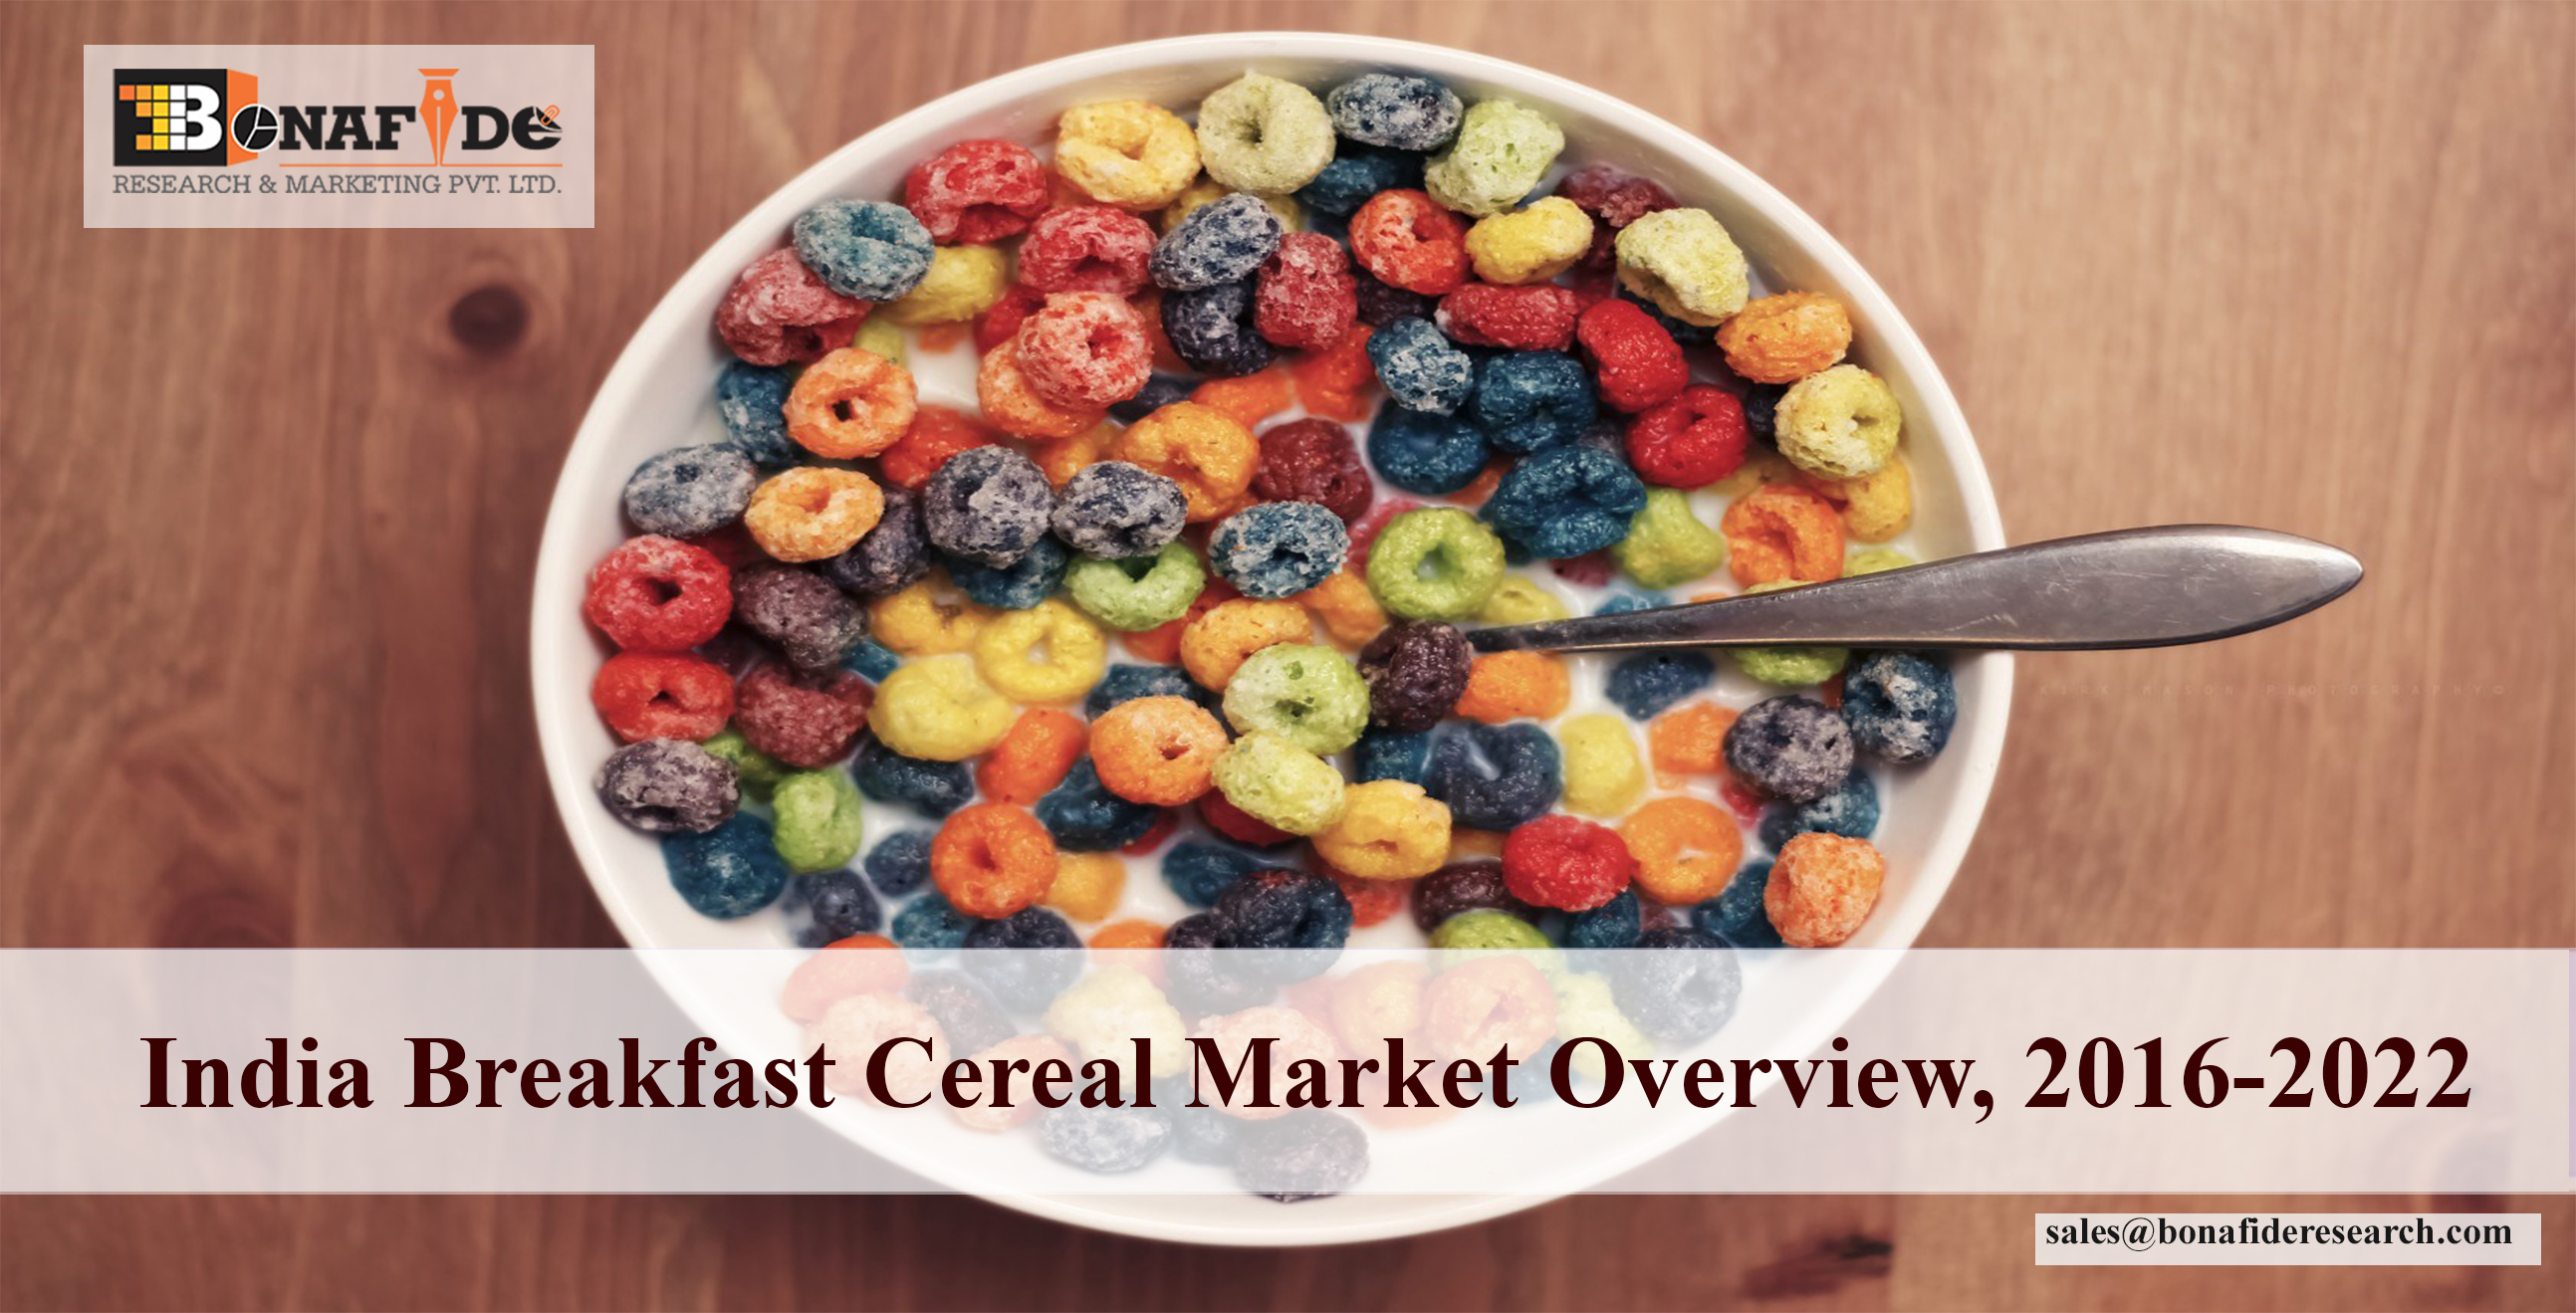 marketing mix for breakfast cereal Breakfast cereals are many people's choice as the first meal of the day it is eaten hot or cold, usually mixed with milk and sometimes yogurt or fruit apart from satisfying the taste buds of consumers, the cereals are also a good source of vitamins, minerals, folate.